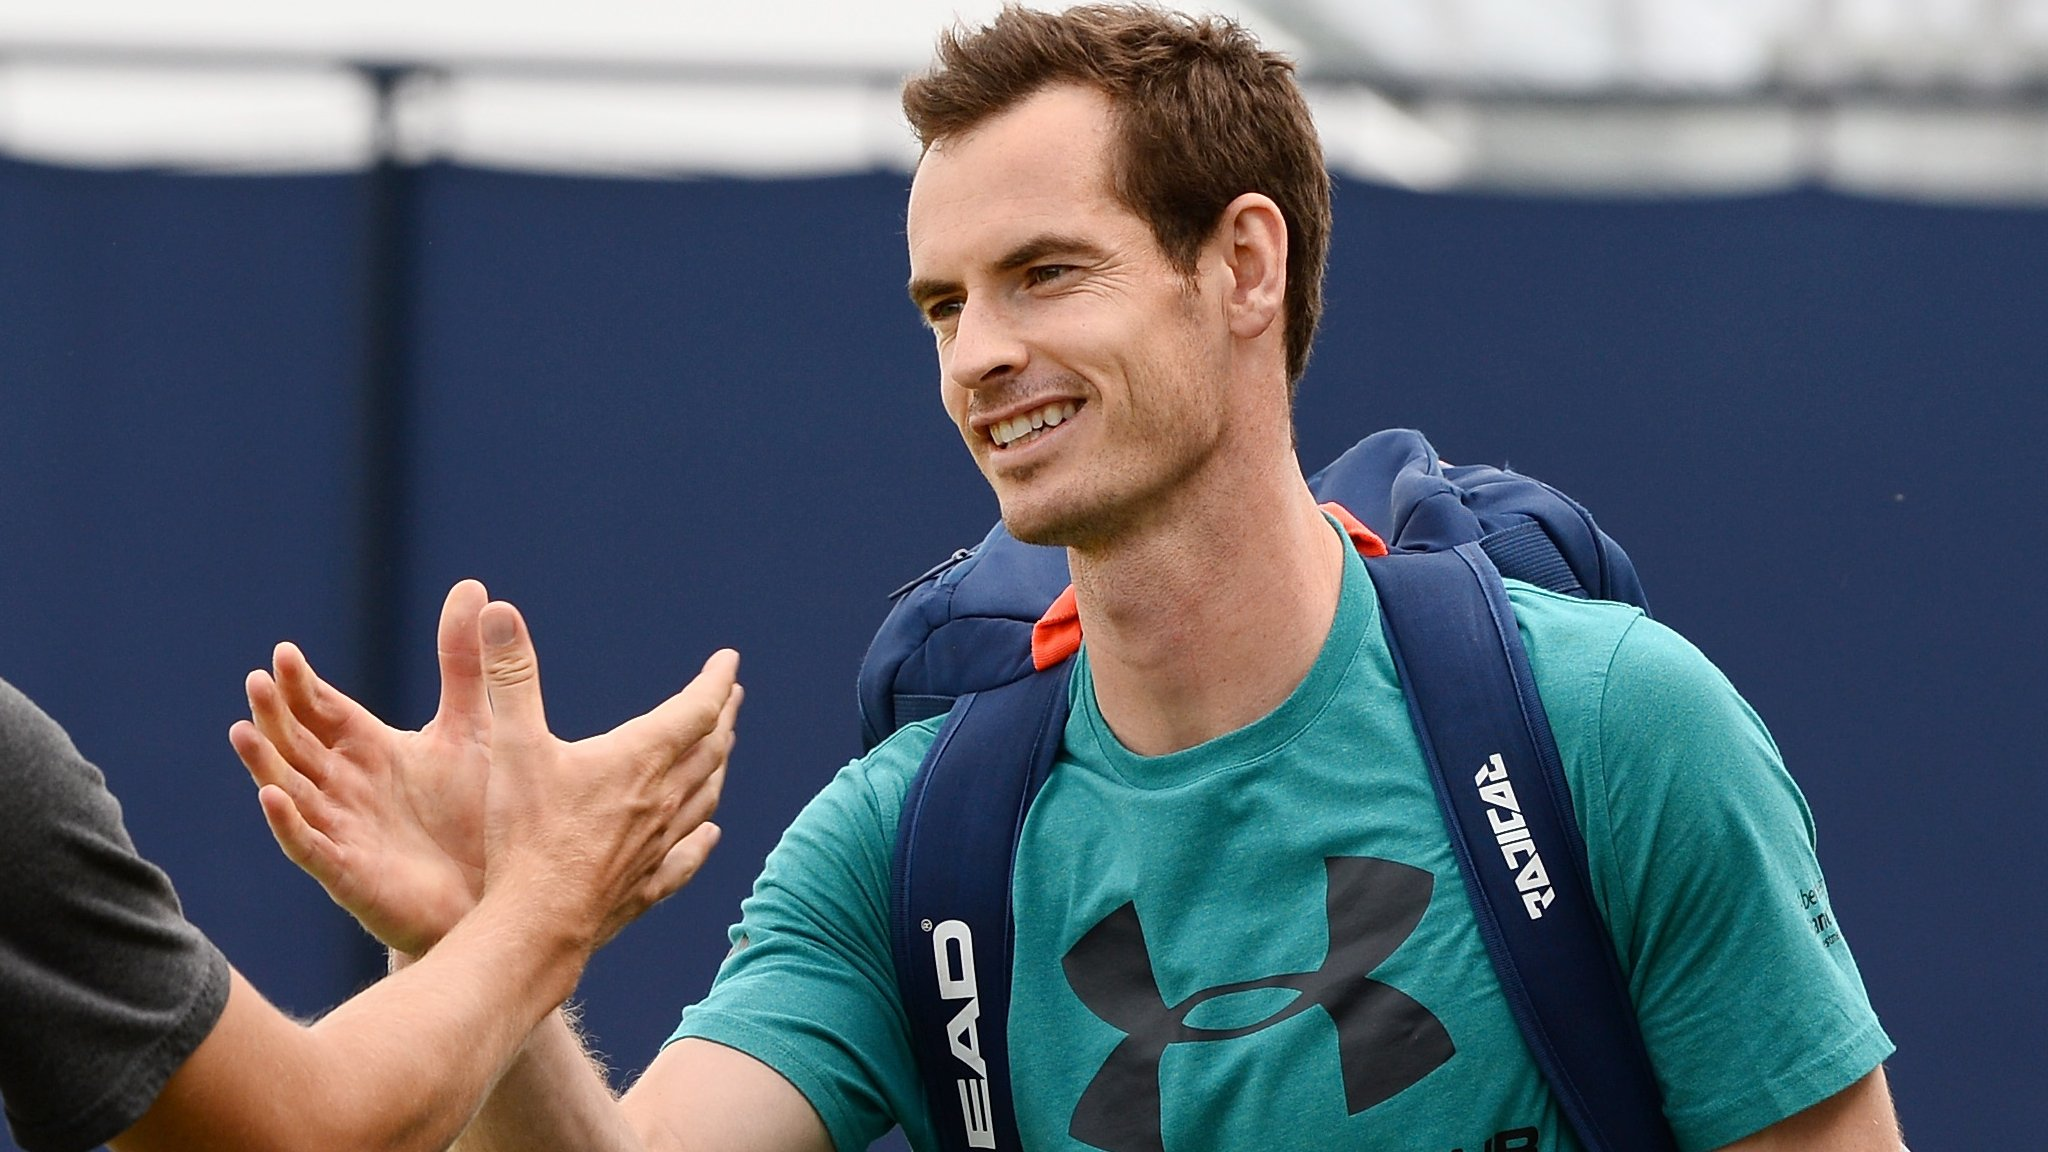 Andy Murray says winning more Grand Slam titles is 'still possible' after hip injury